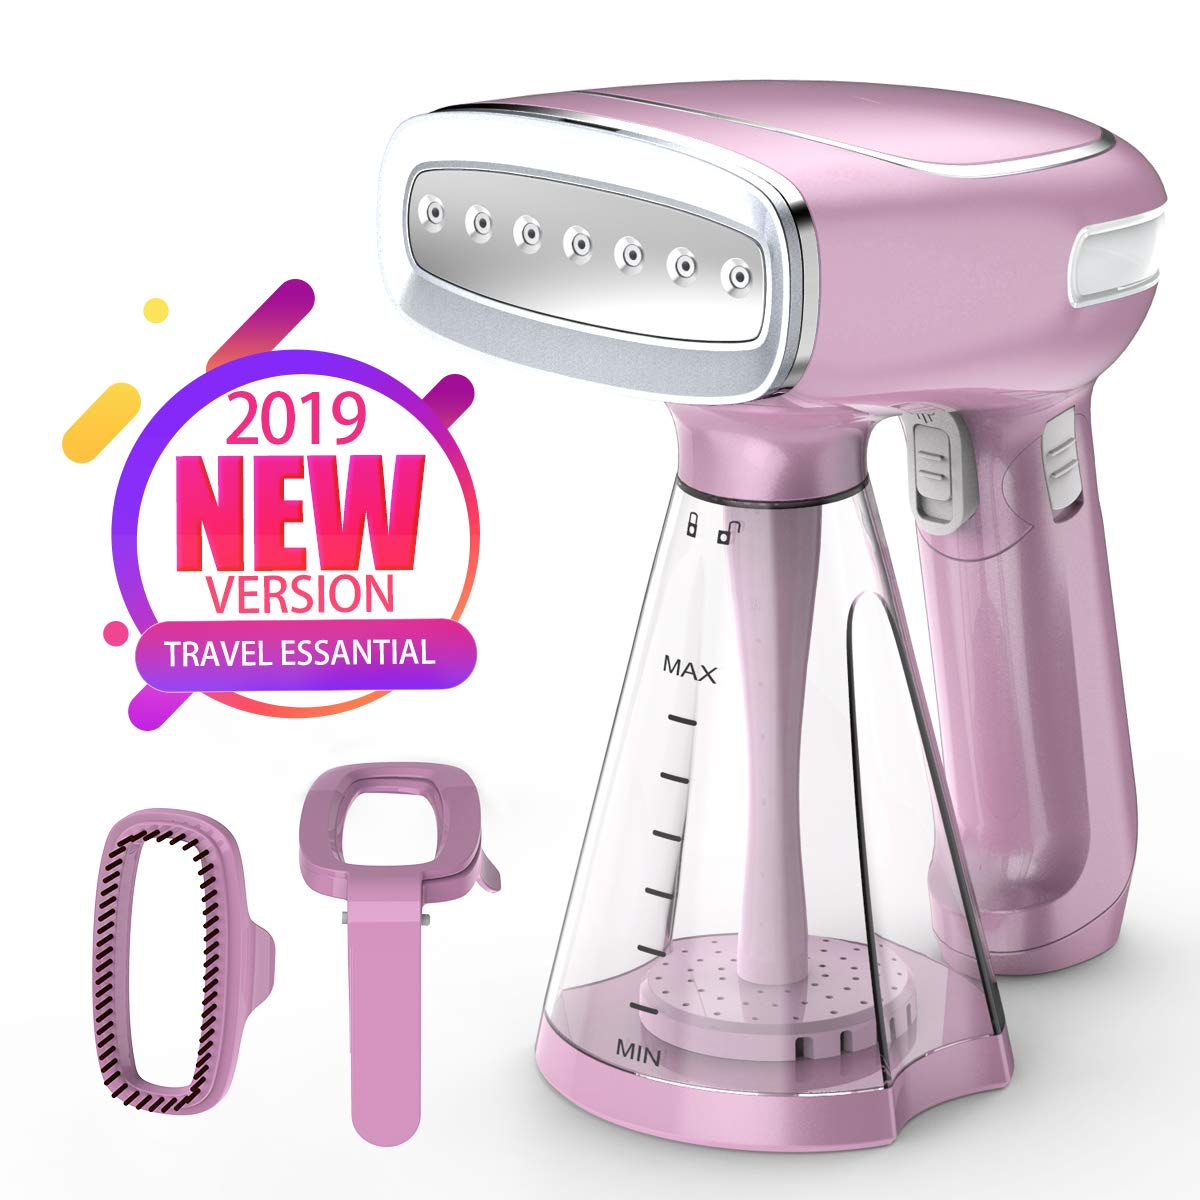 KEIYALOE Clothes Steamer,1200WPortable Garment Steamerwith 250ml,25s Fast Heat-upSteamer for Clothes,Handheld Fabric Steamer for Home and Travel,Vertically & Horizontally Steam,Three Steam Mode